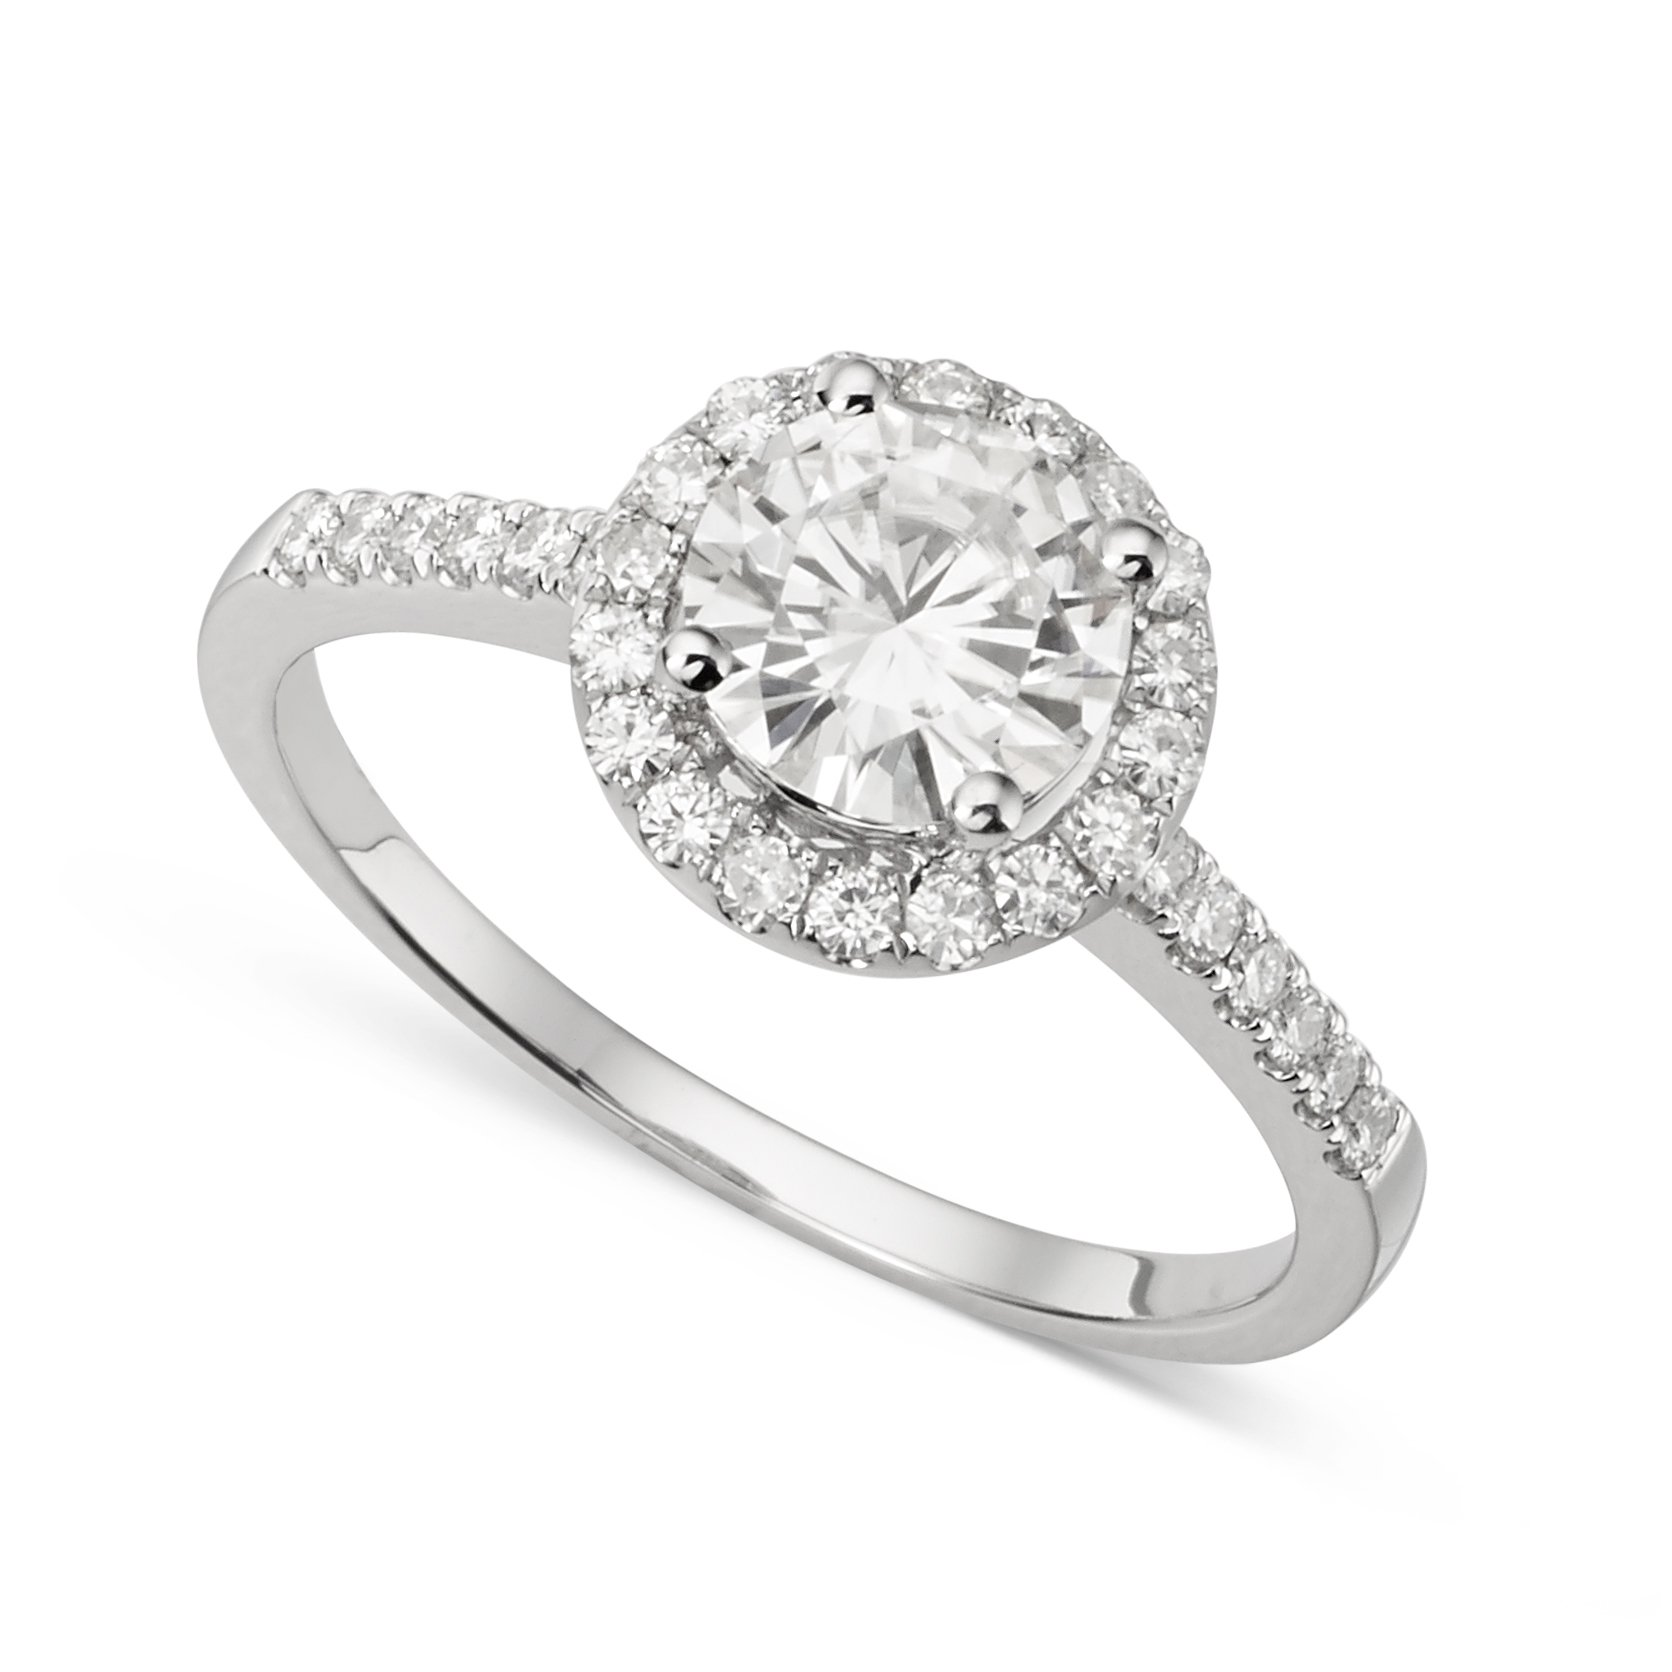 Forever Brilliant 6.5mm Moissanite Engagement Ring - size 8, 1.30cttw DEW By Charles & Colvard